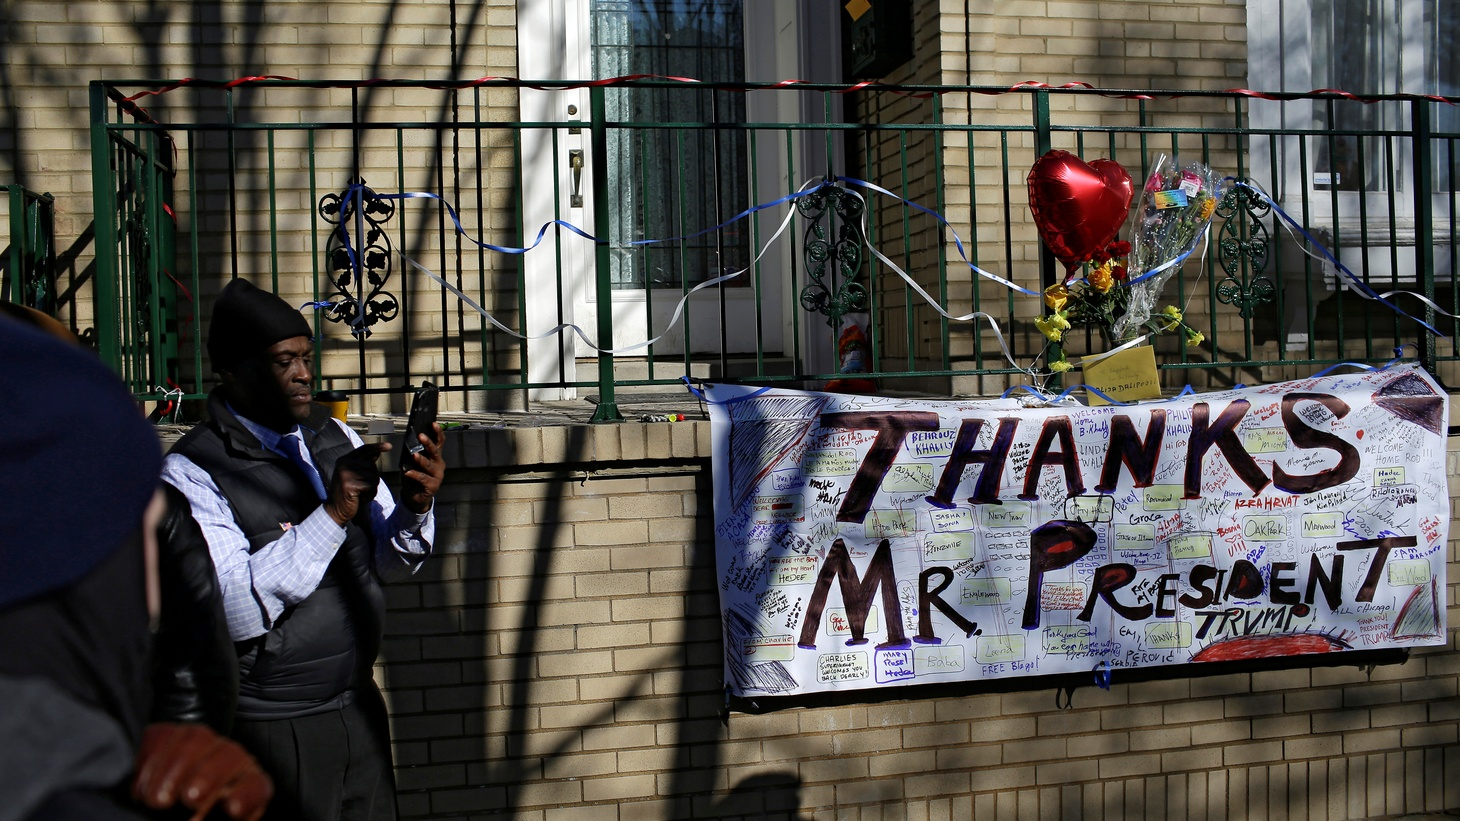 """A sign that reads """"Thanks Mr. President Trump"""" is displayed outside the home of Rod Blagojevich, the ex-Illinois governor convicted of trying to peddle Barack Obama's vacated U.S. Senate seat, after U.S. President Donald Trump commuted his prison sentence, in Chicago, Illinois, U.S. February 19, 2020."""